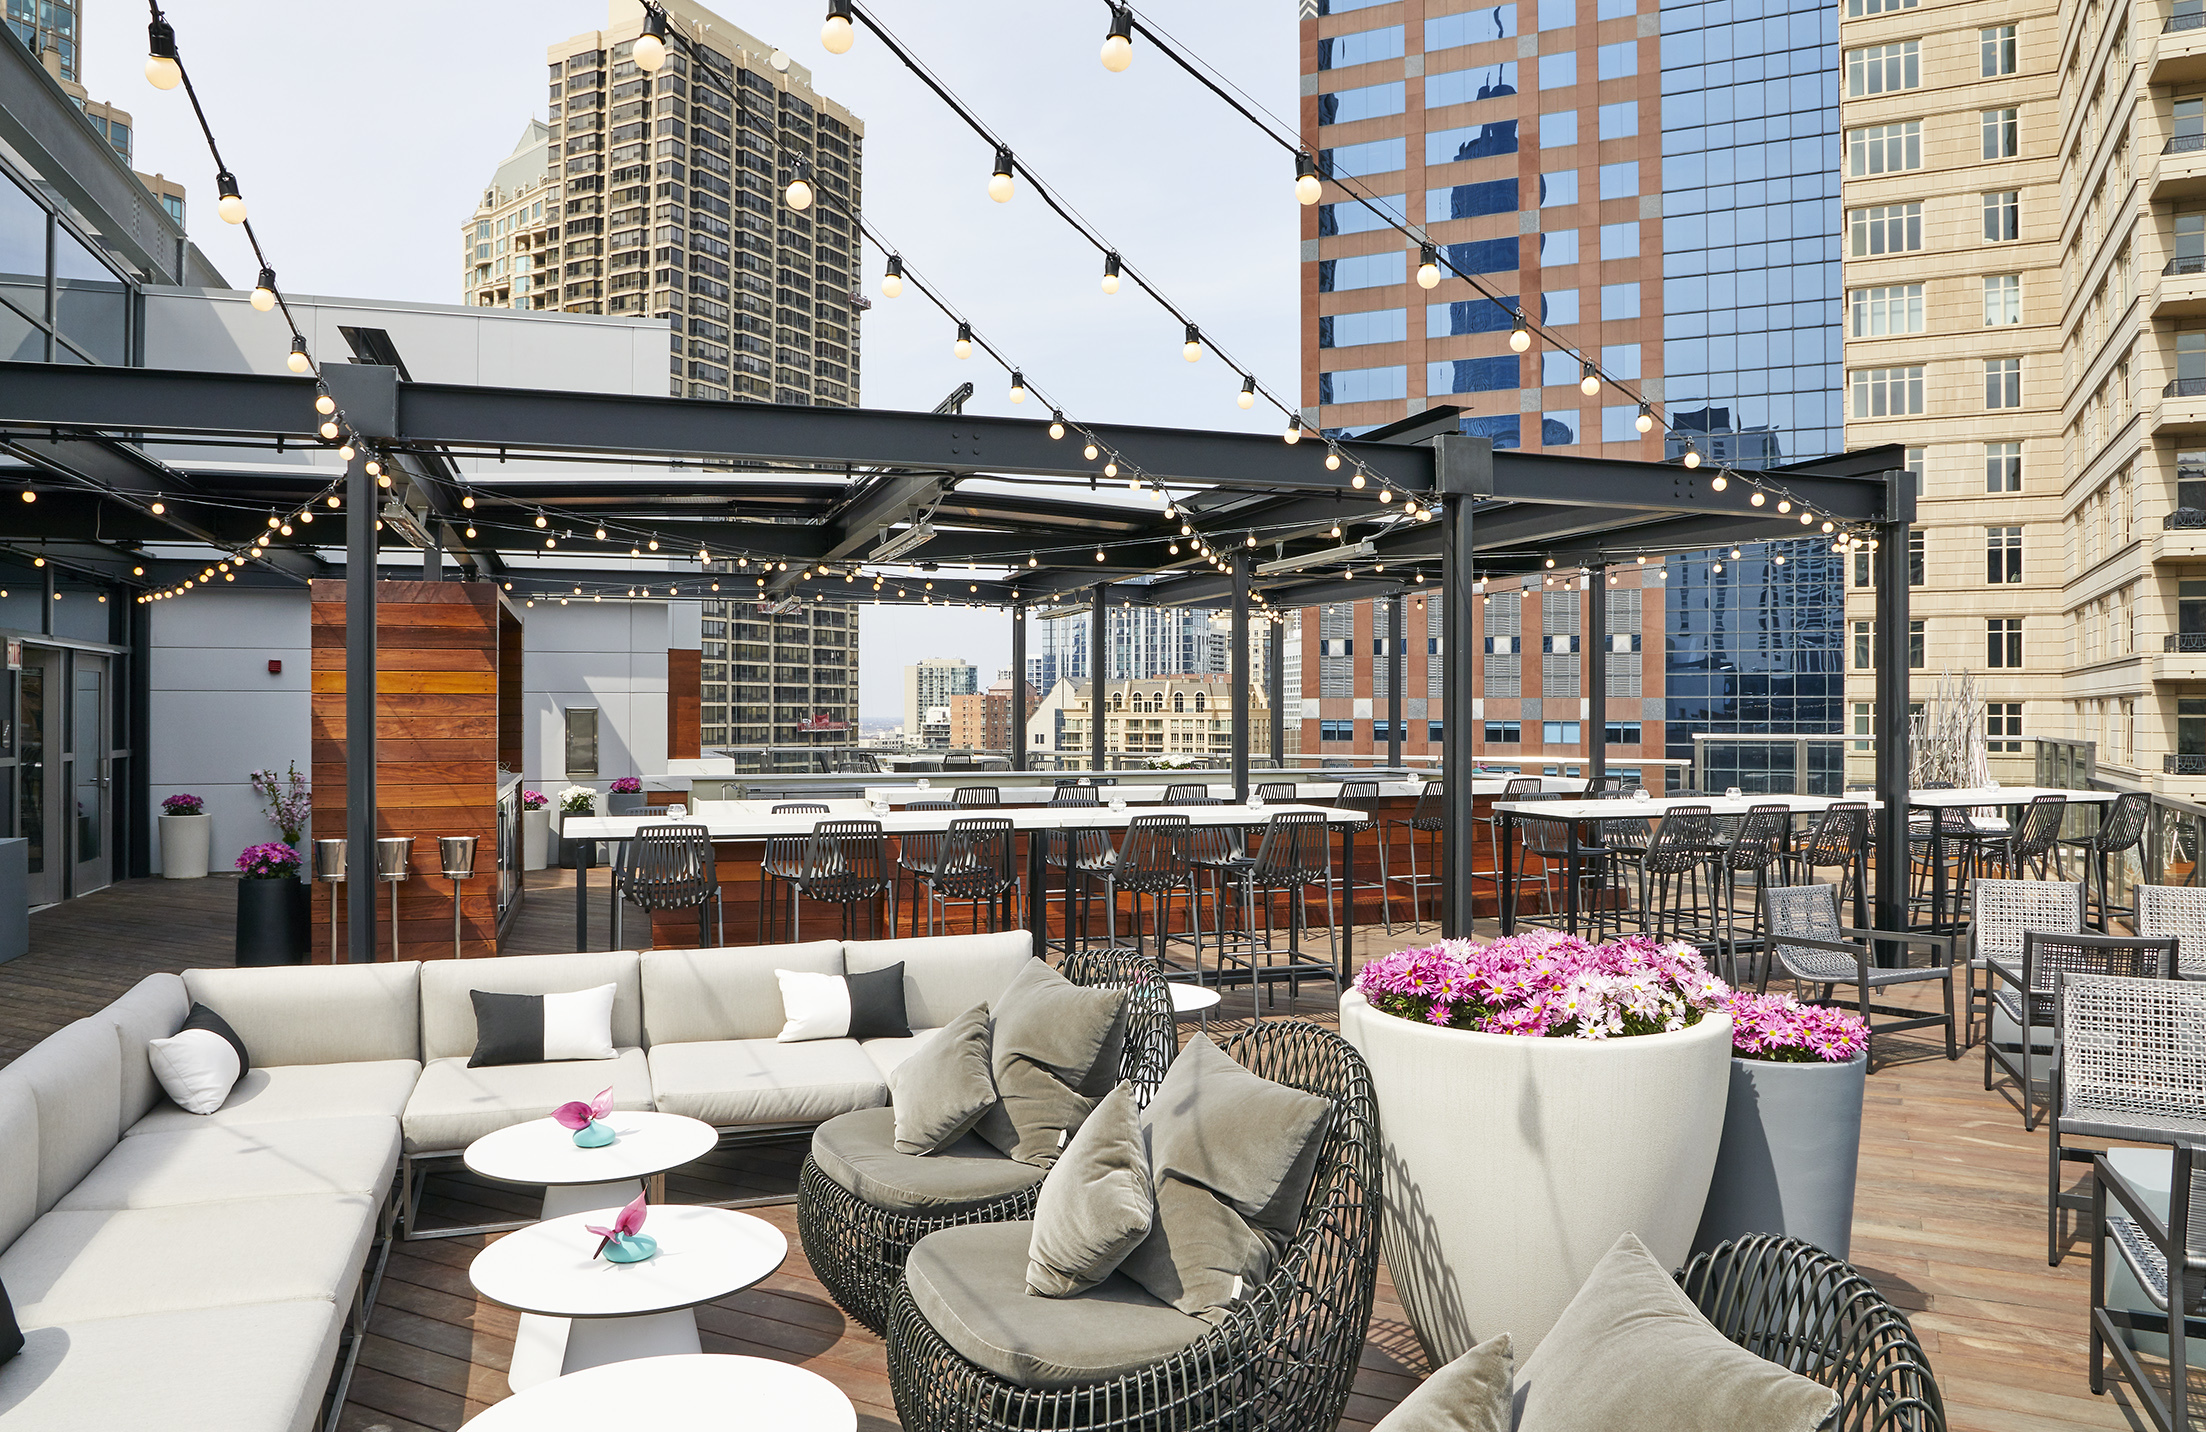 The best rooftops, patios and beer gardens in Chicago